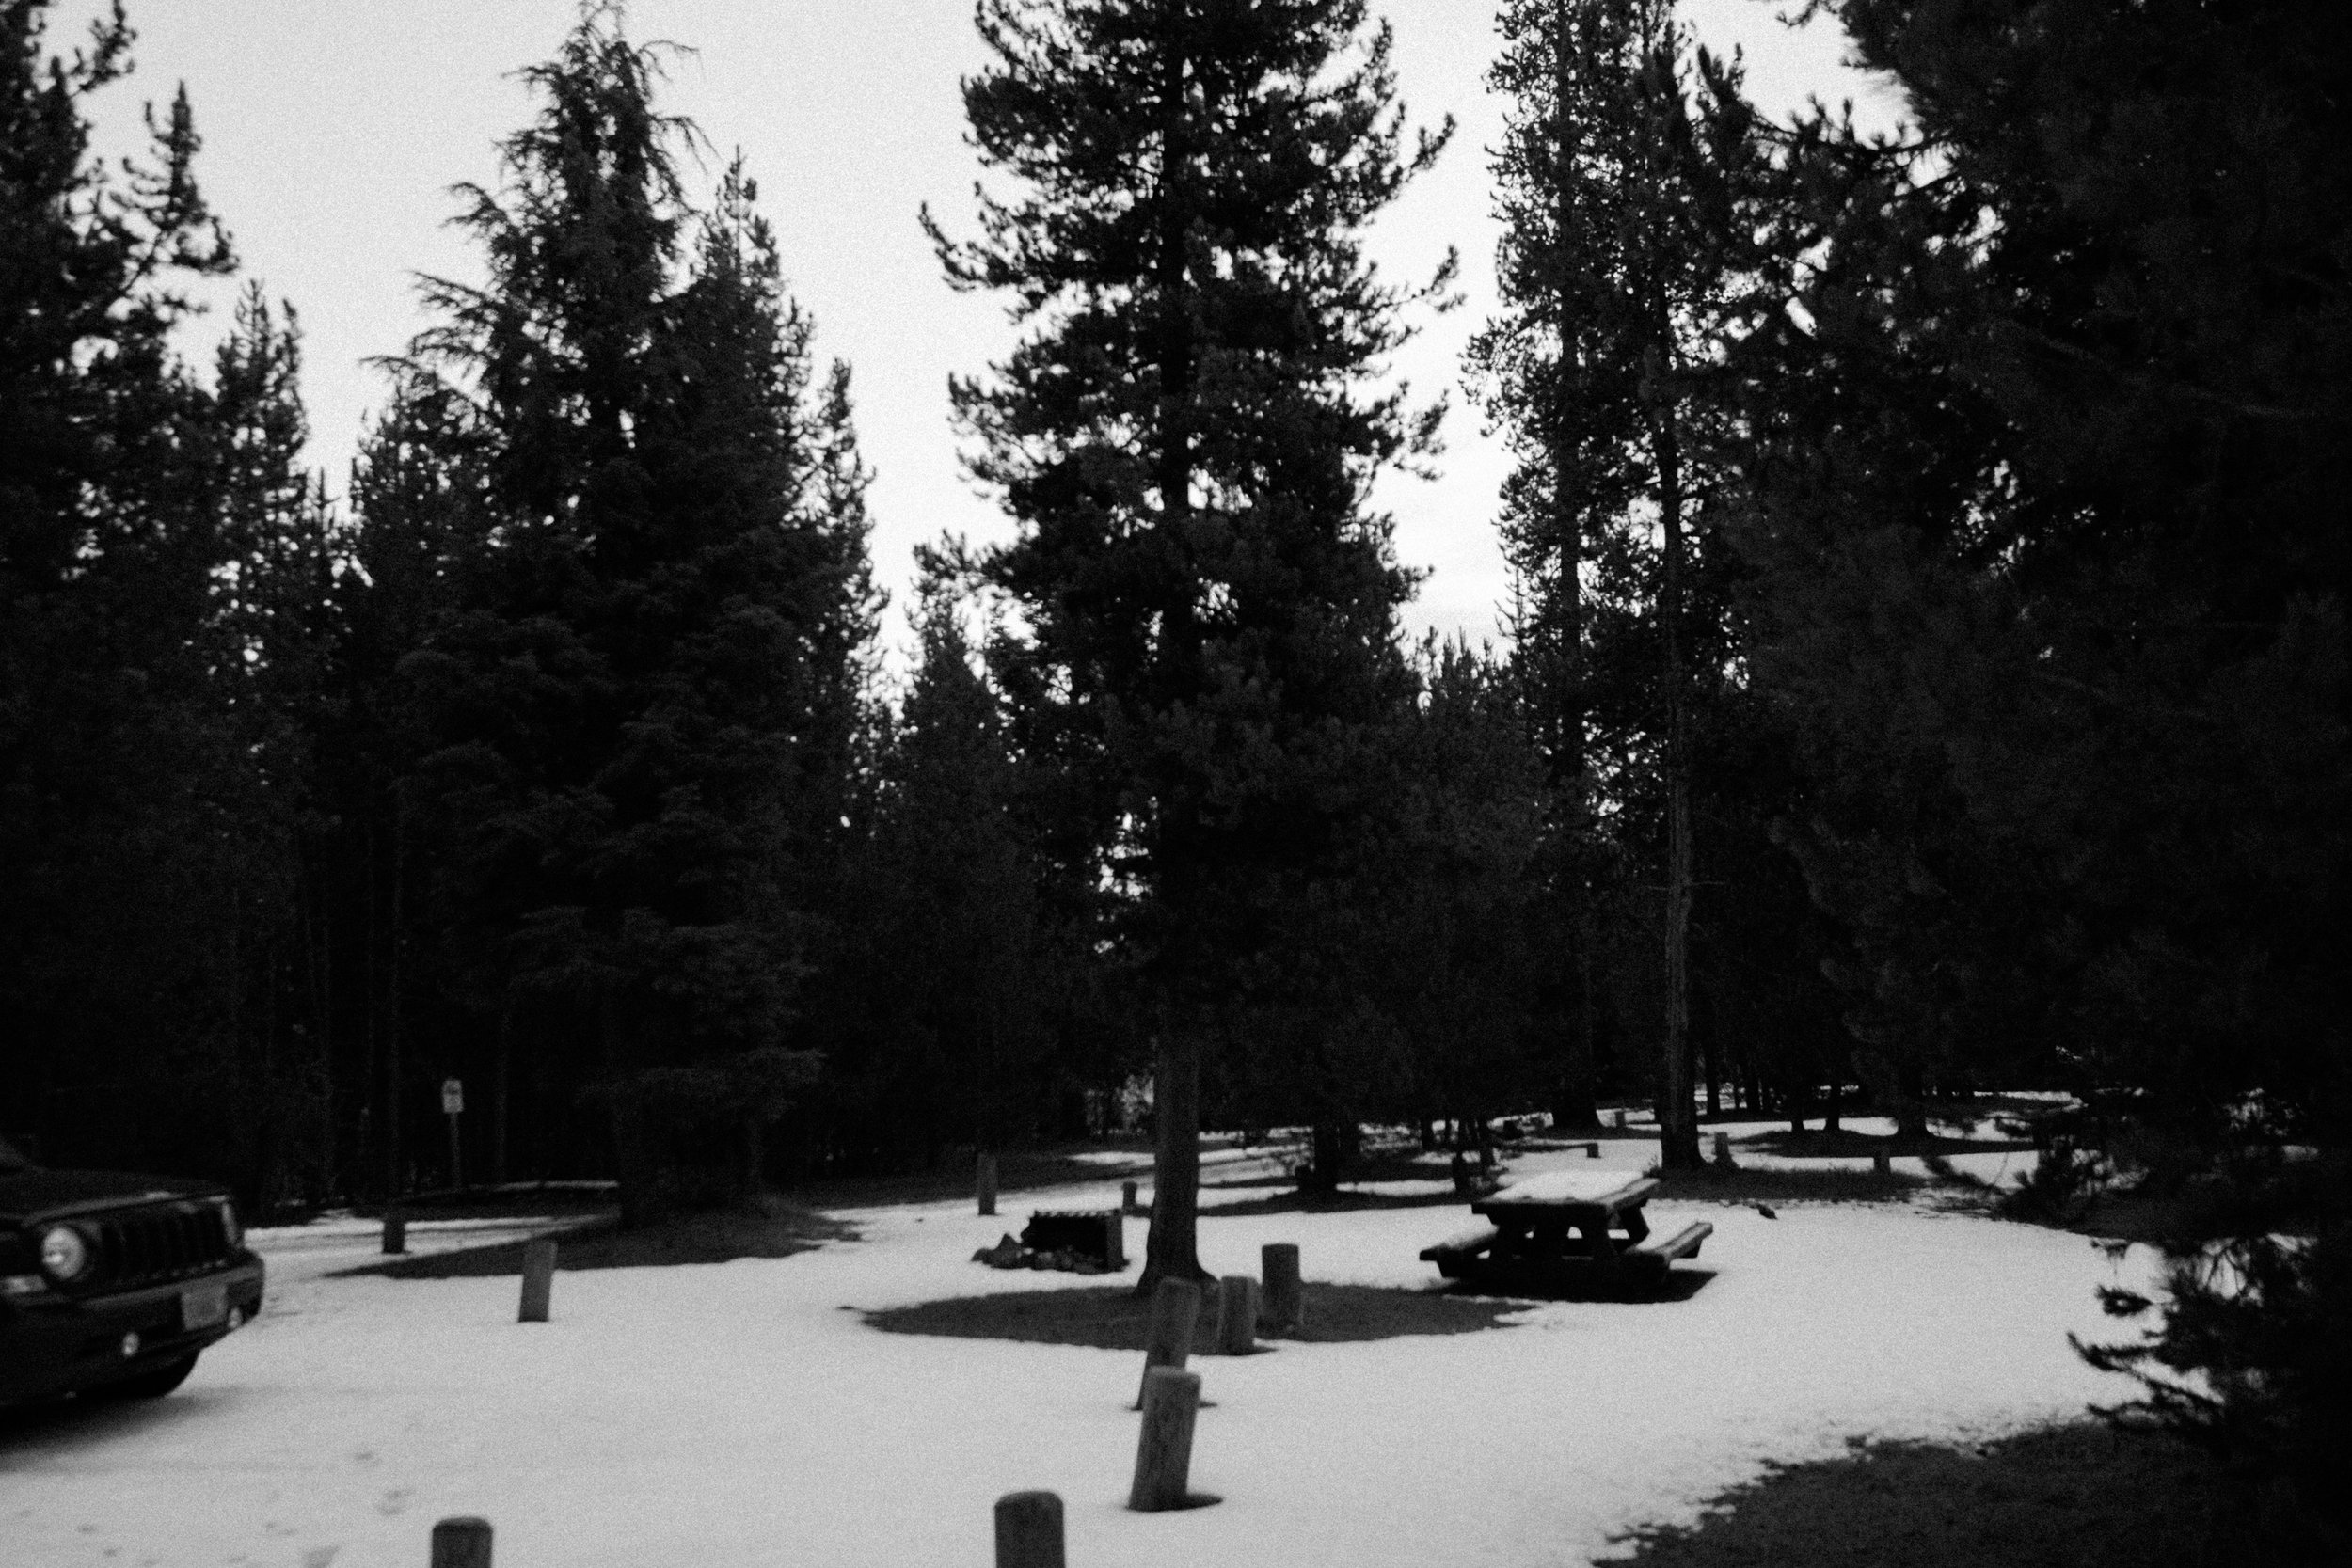 Empty and cold campground, 6:20am